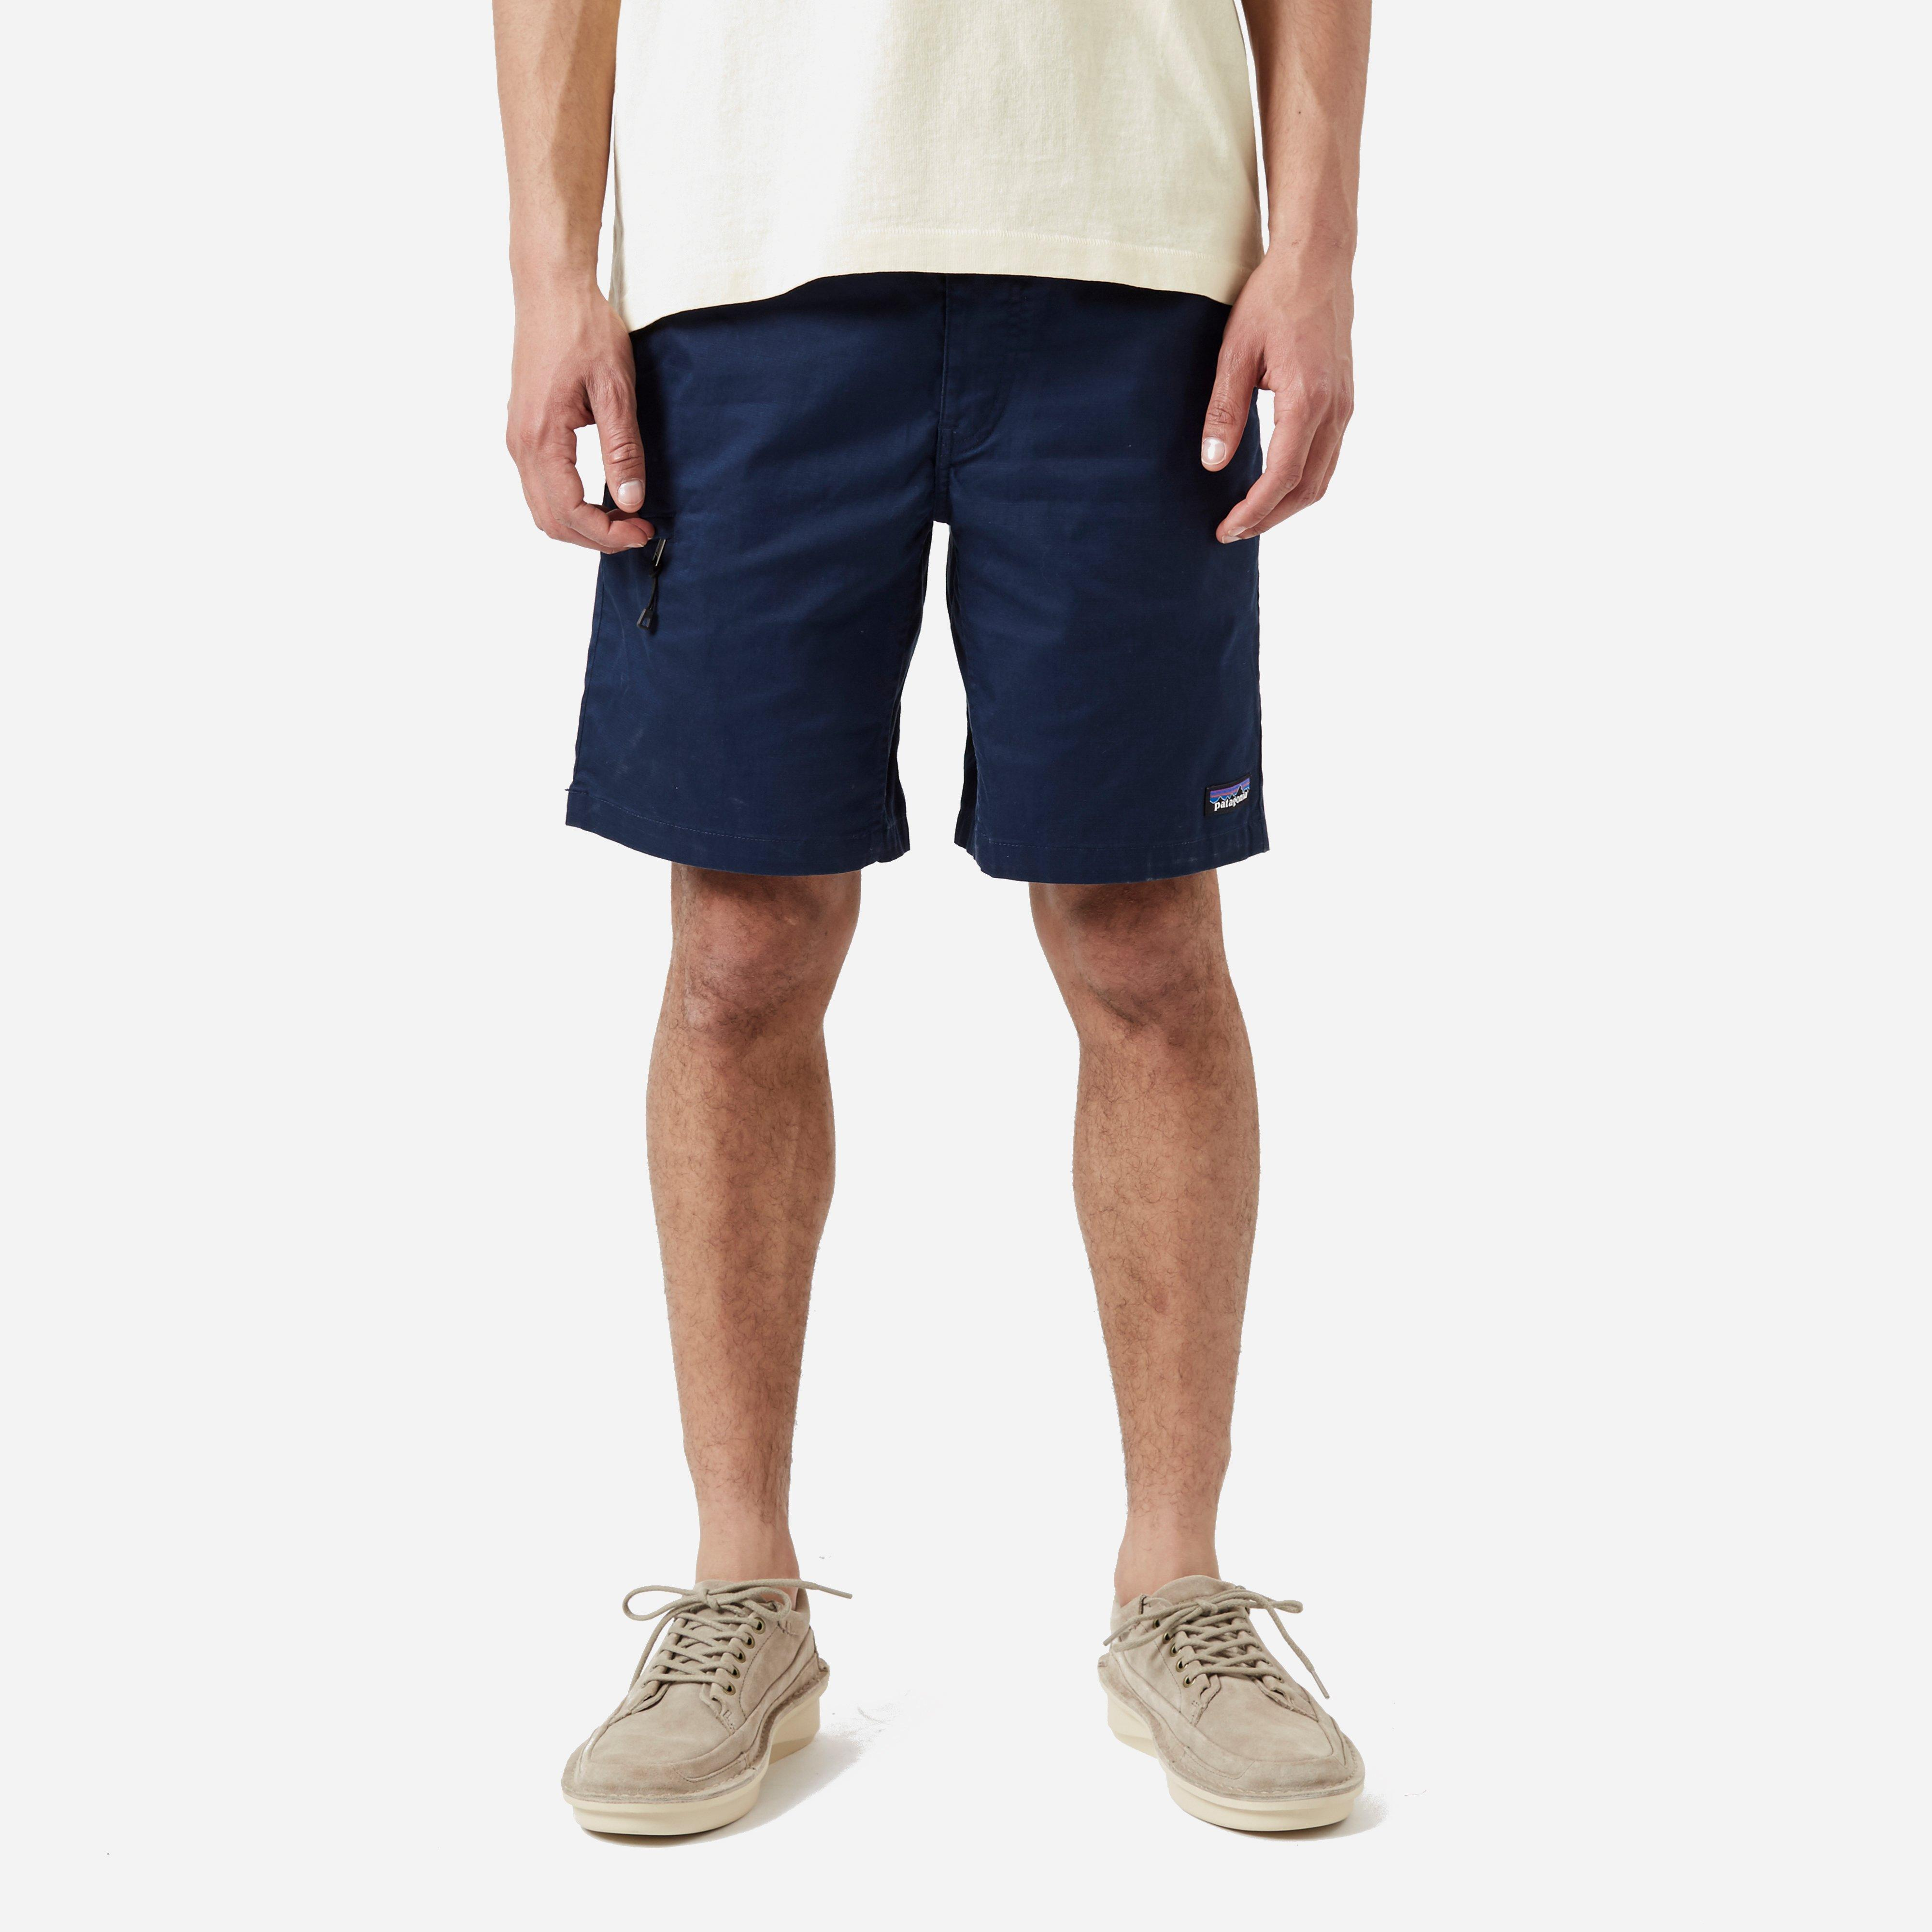 Patagonia Performance GI IV Shorts